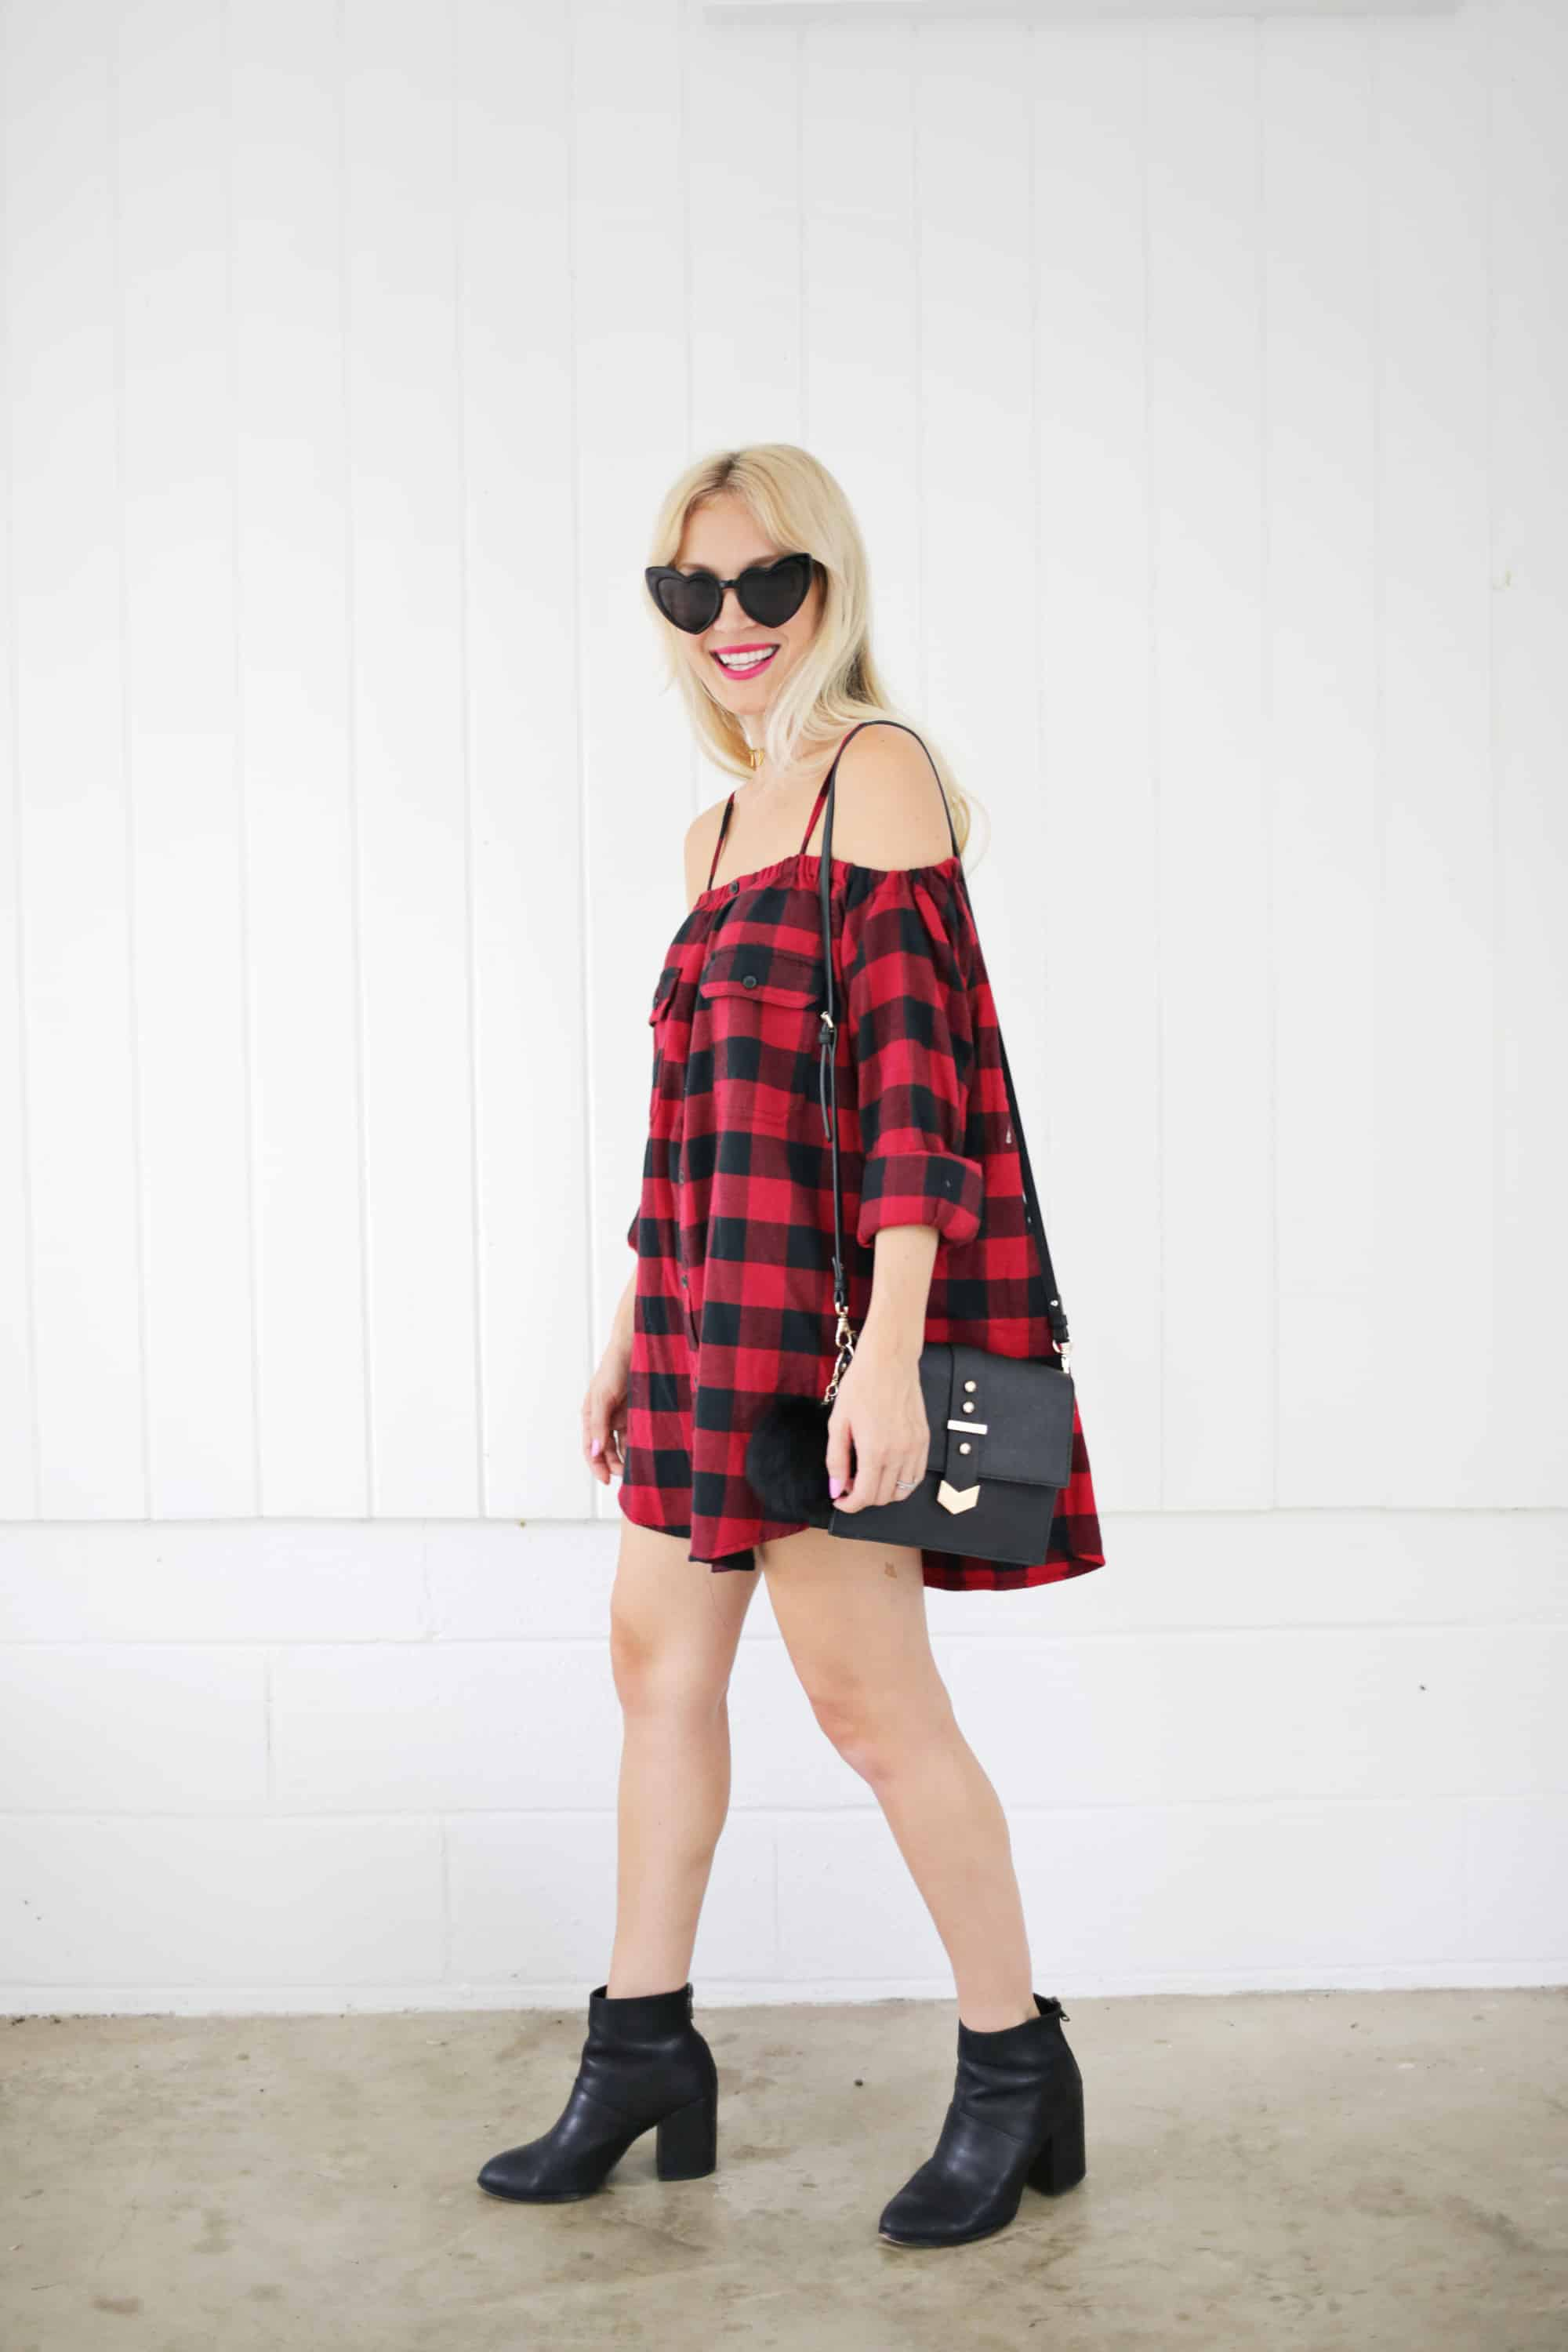 Turn A Flannel Shirt Into A Dress!